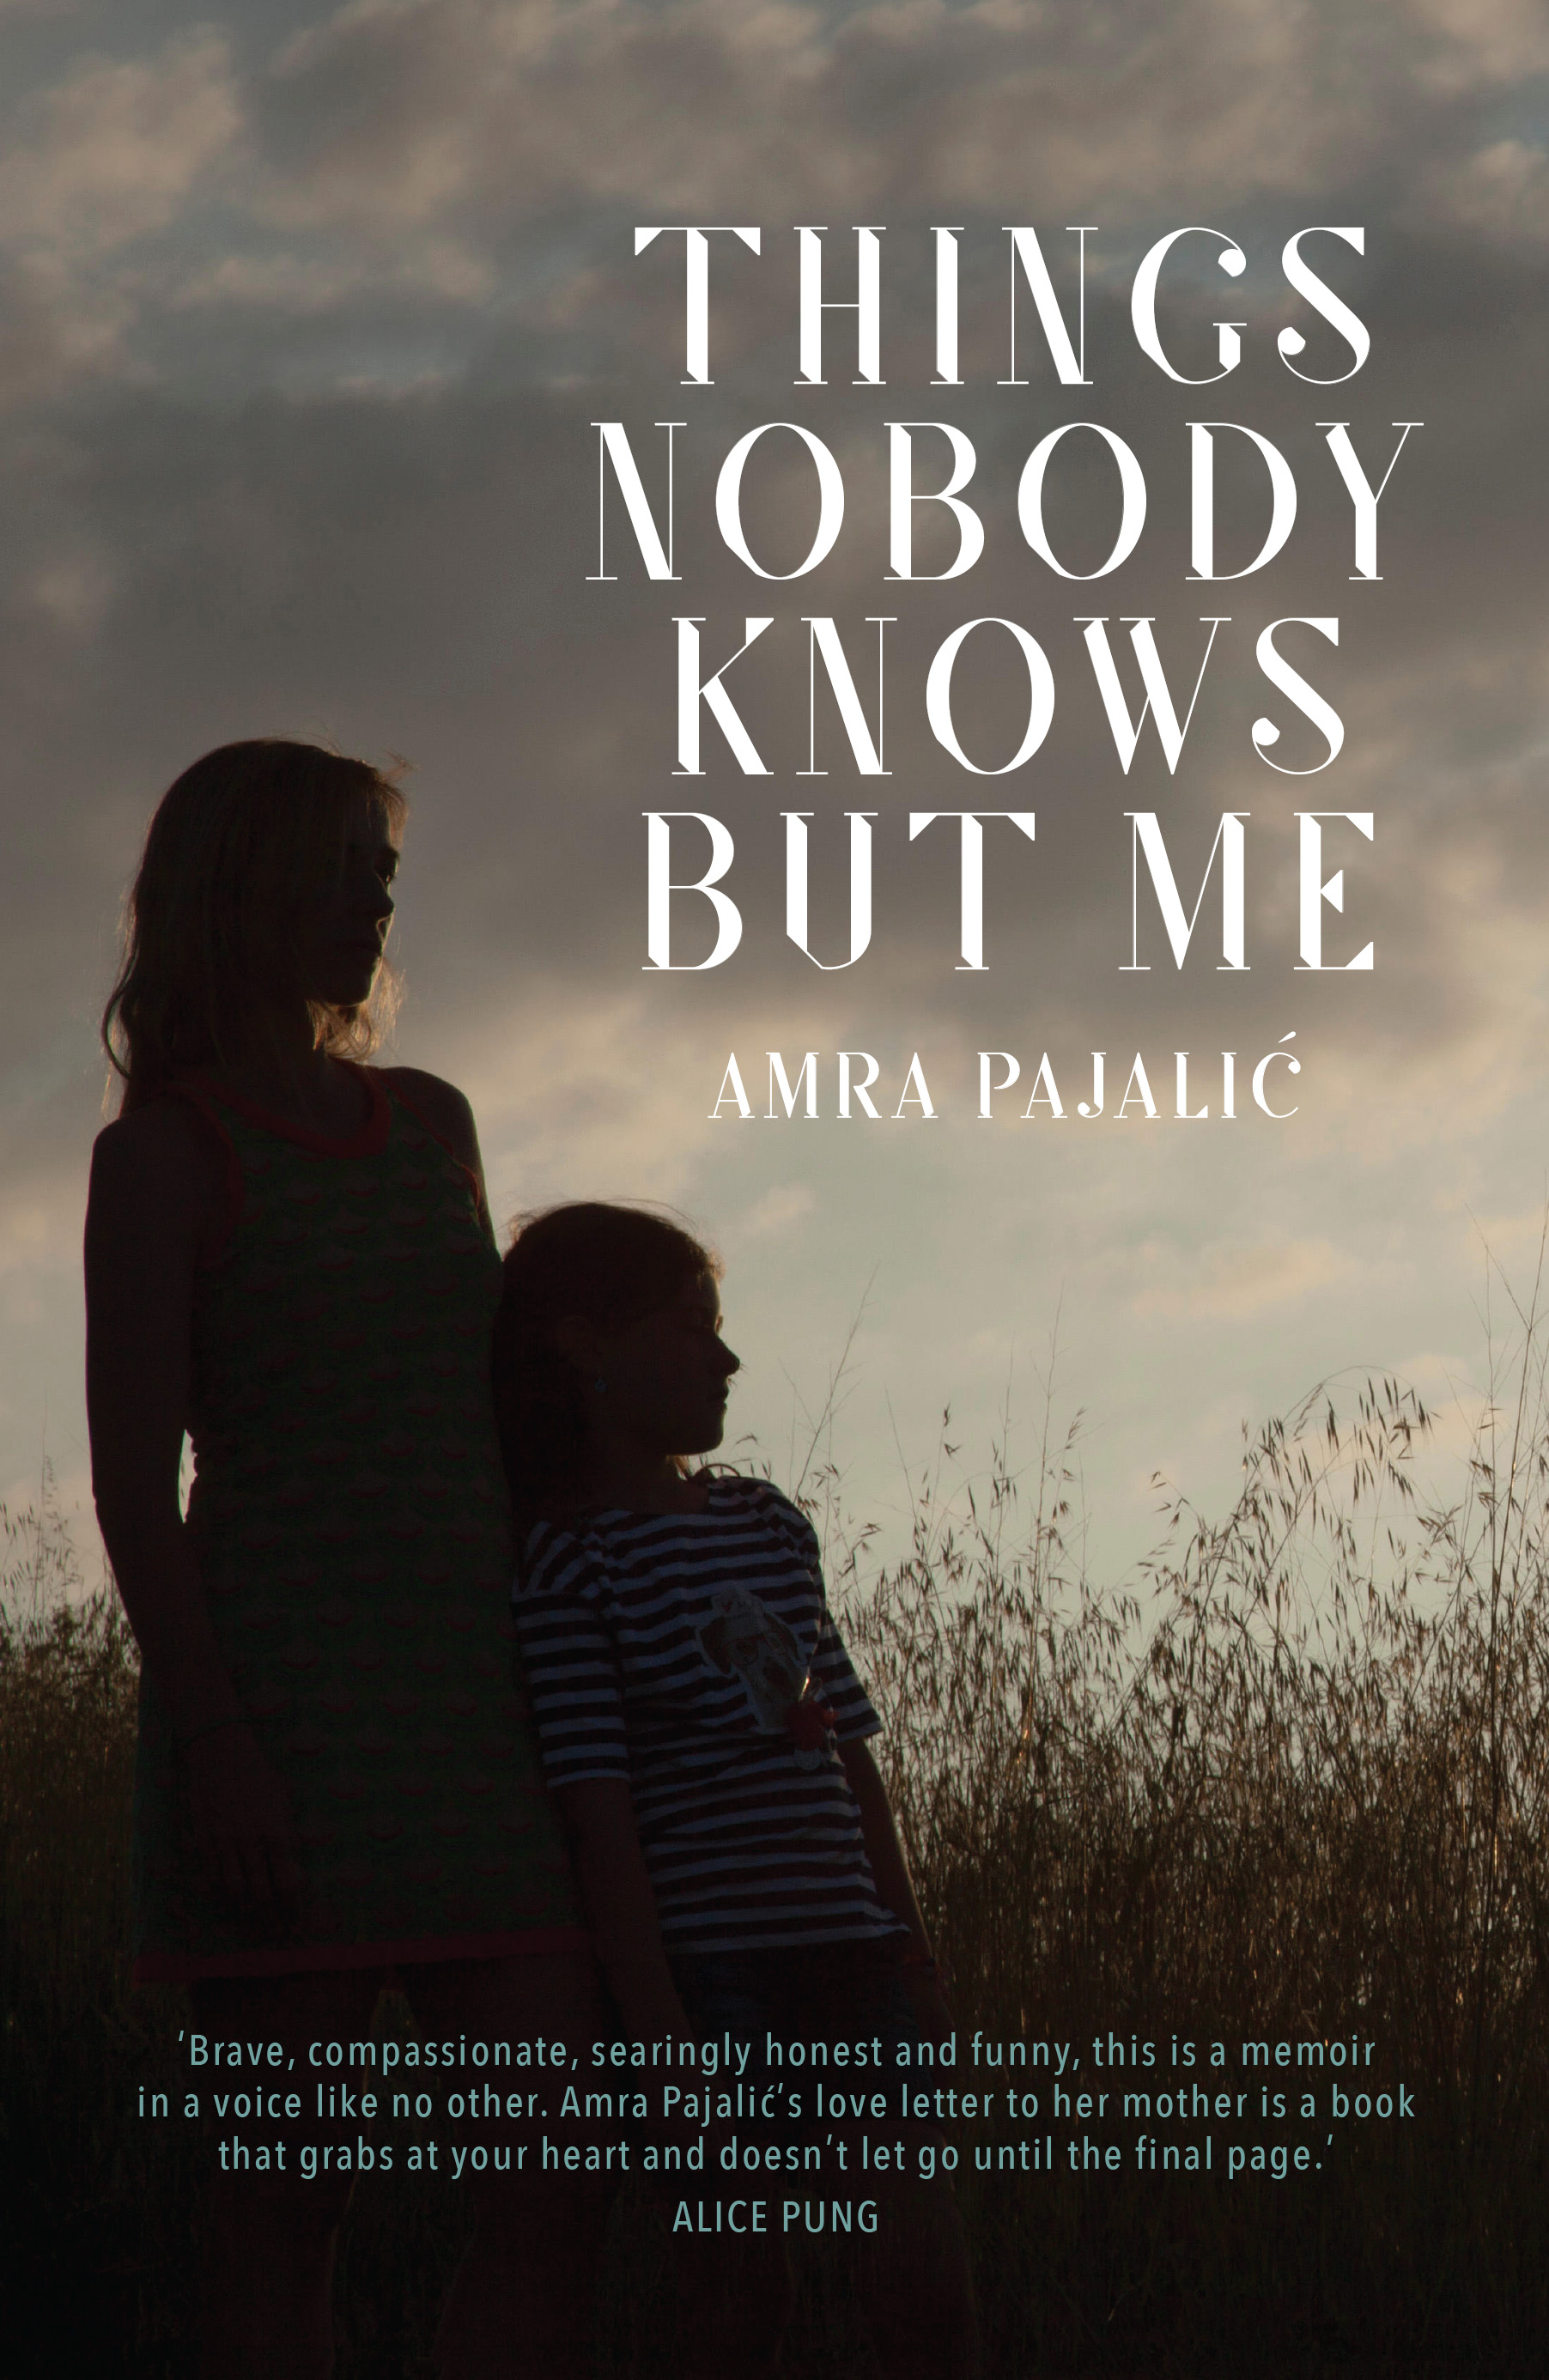 Things Nobody Knows But Me by Amra Pajalic  Book Launch